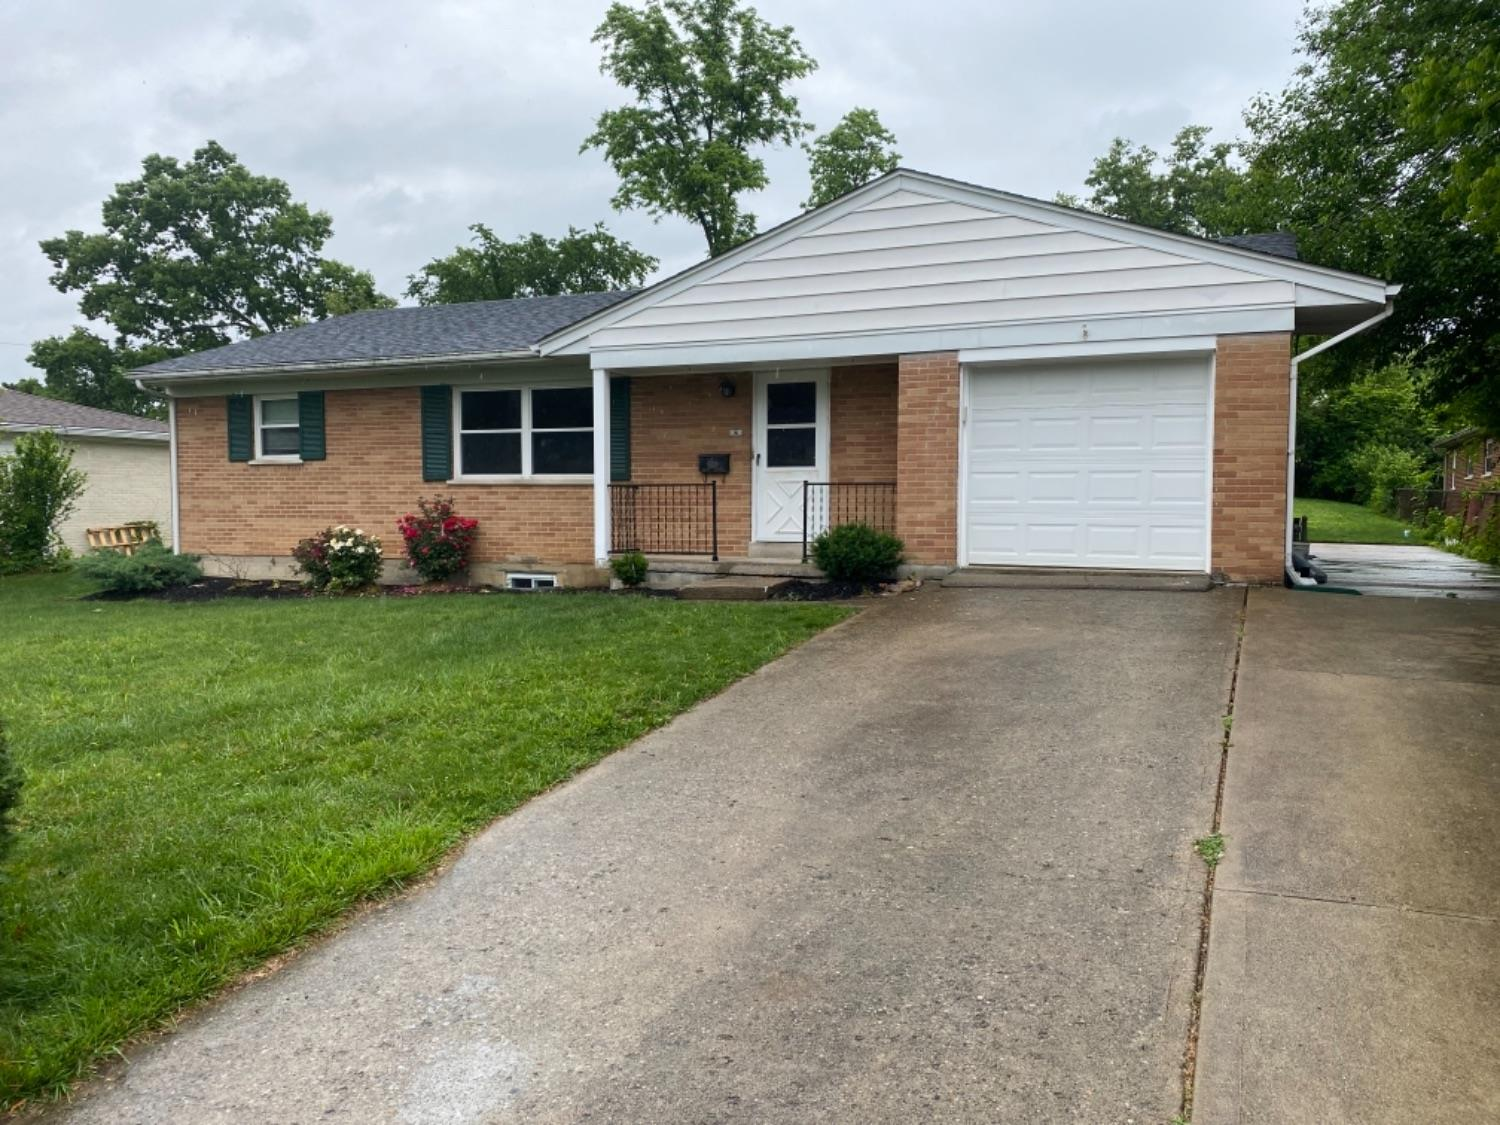 37 Crestview Drive, Milford, OH 45150